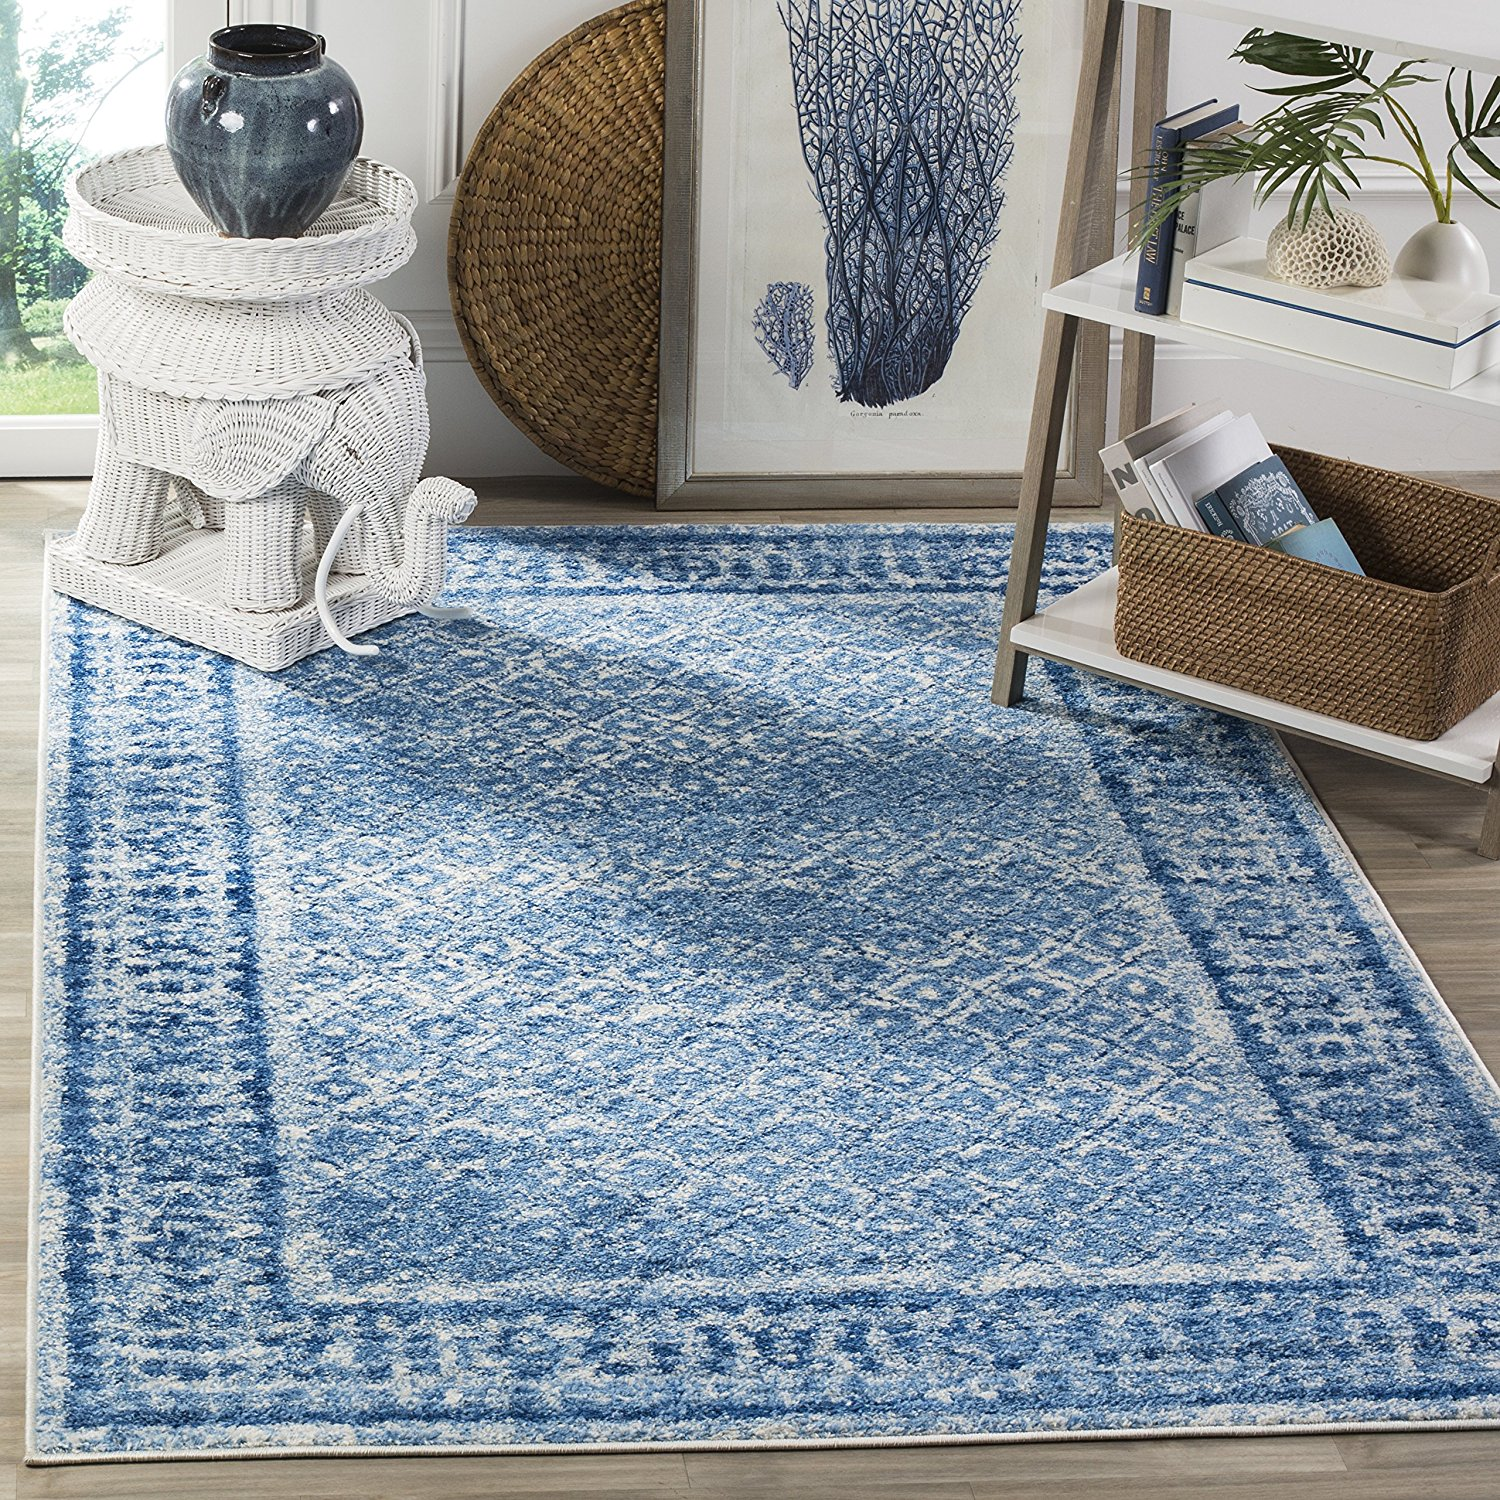 Safavieh Adirondack Collection ADR110D Silver and Blue Vintage Area Rug (8' x 10')